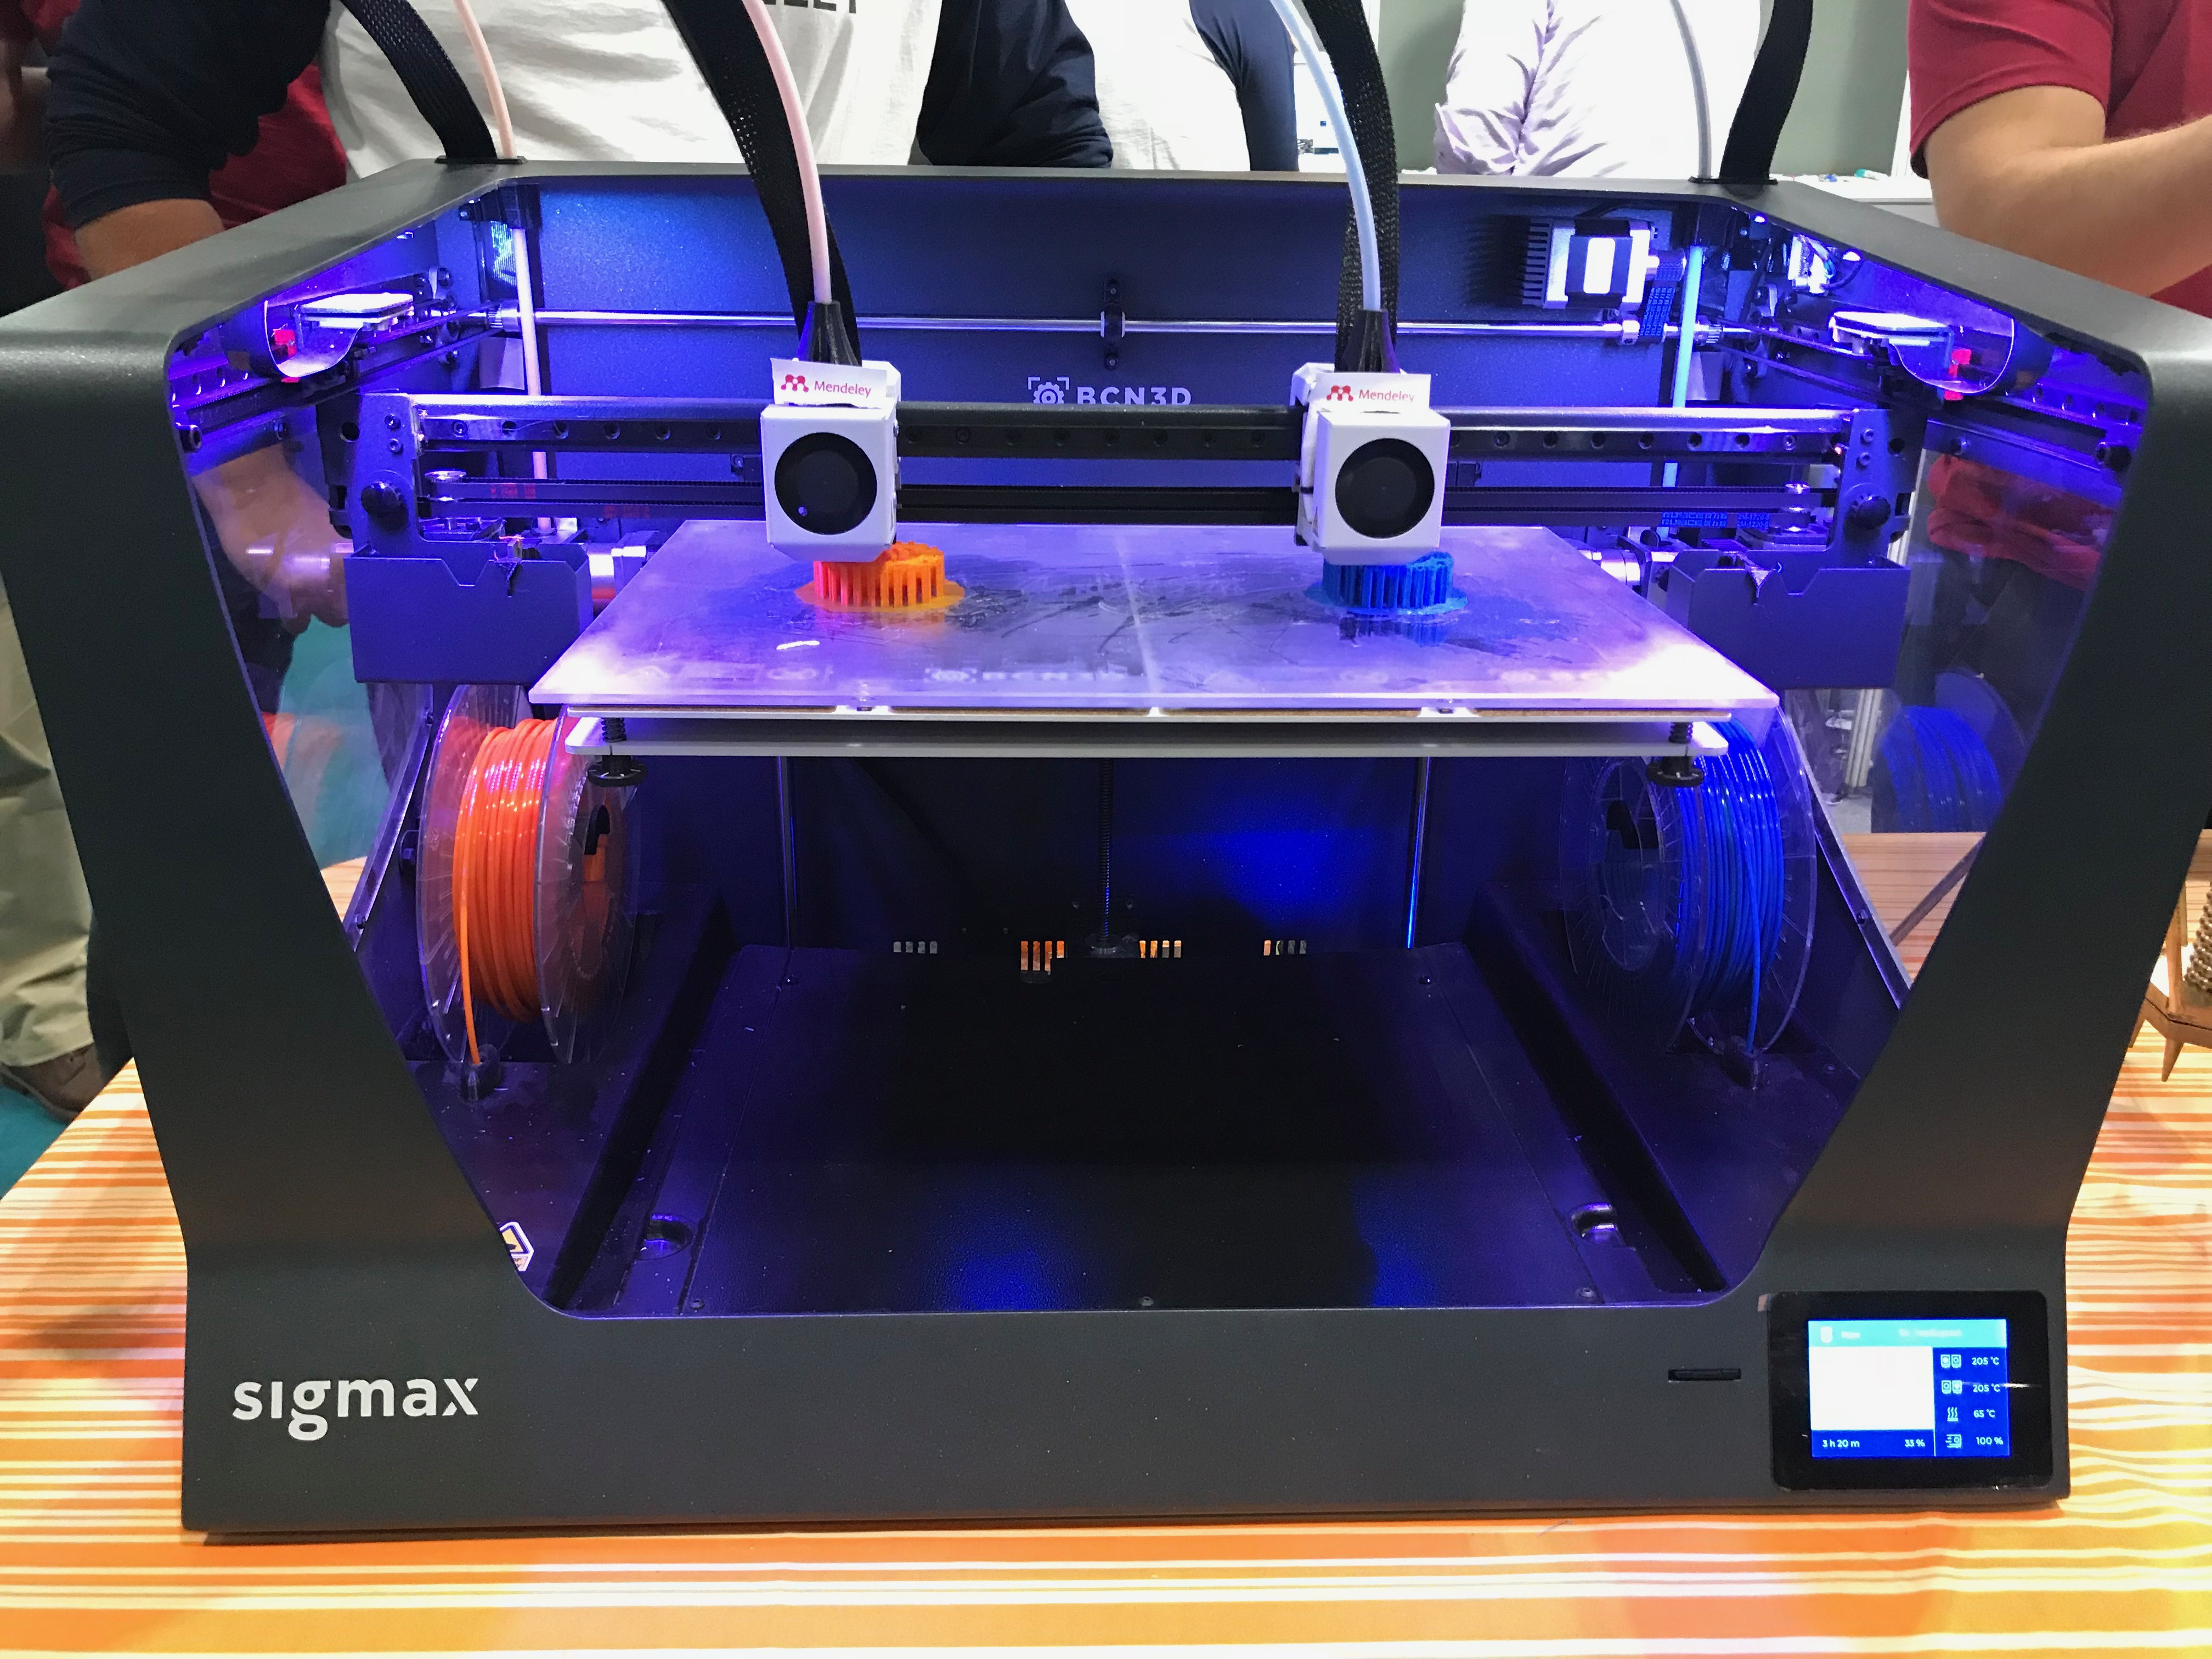 Sigmax BCN3D printer at Elsevier stand at NSL 2018. Photo by Swamini Khanvilkar.